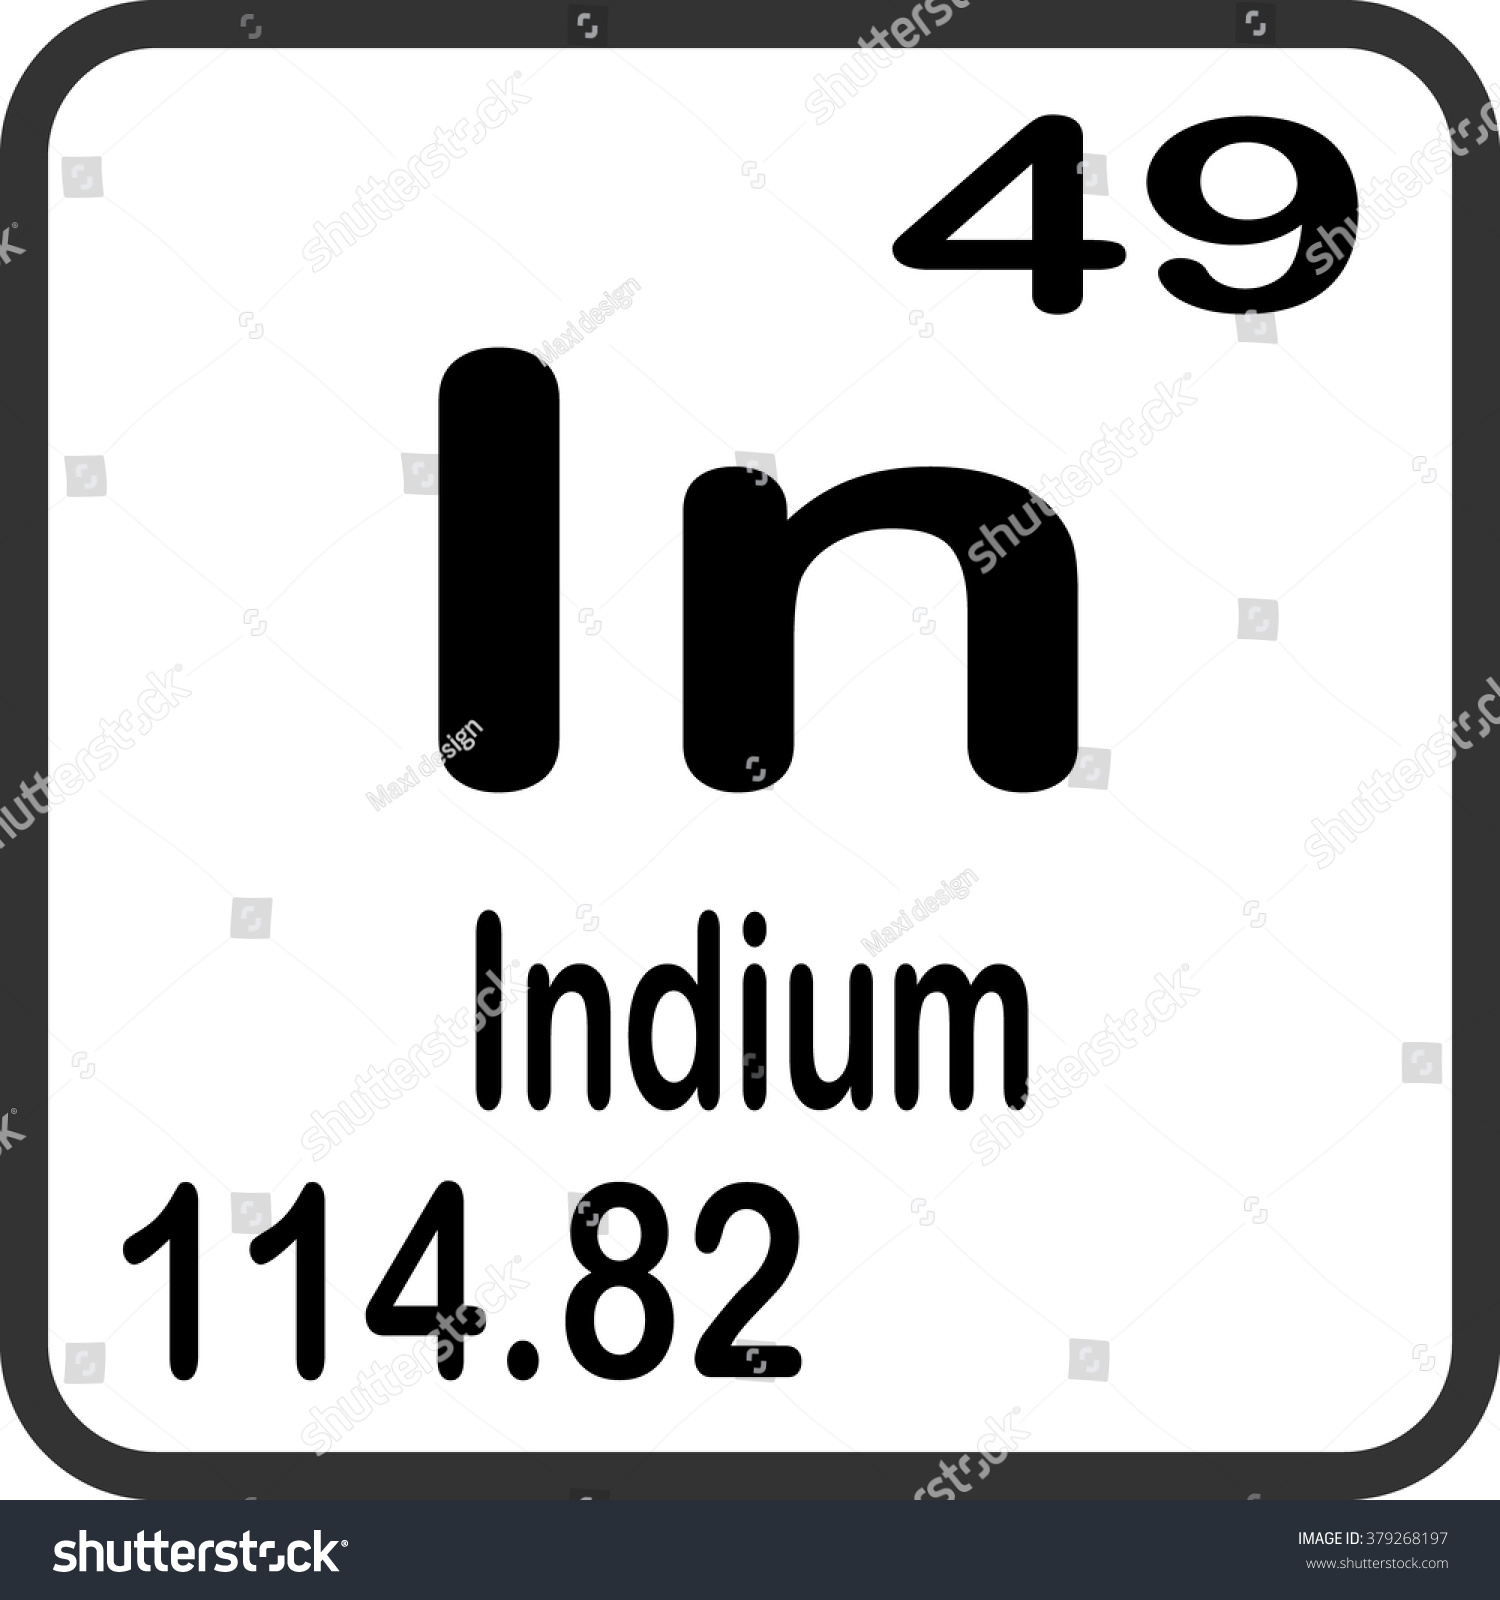 Periodic table elements indium stock vector 379268197 shutterstock periodic table of elements indium gamestrikefo Gallery